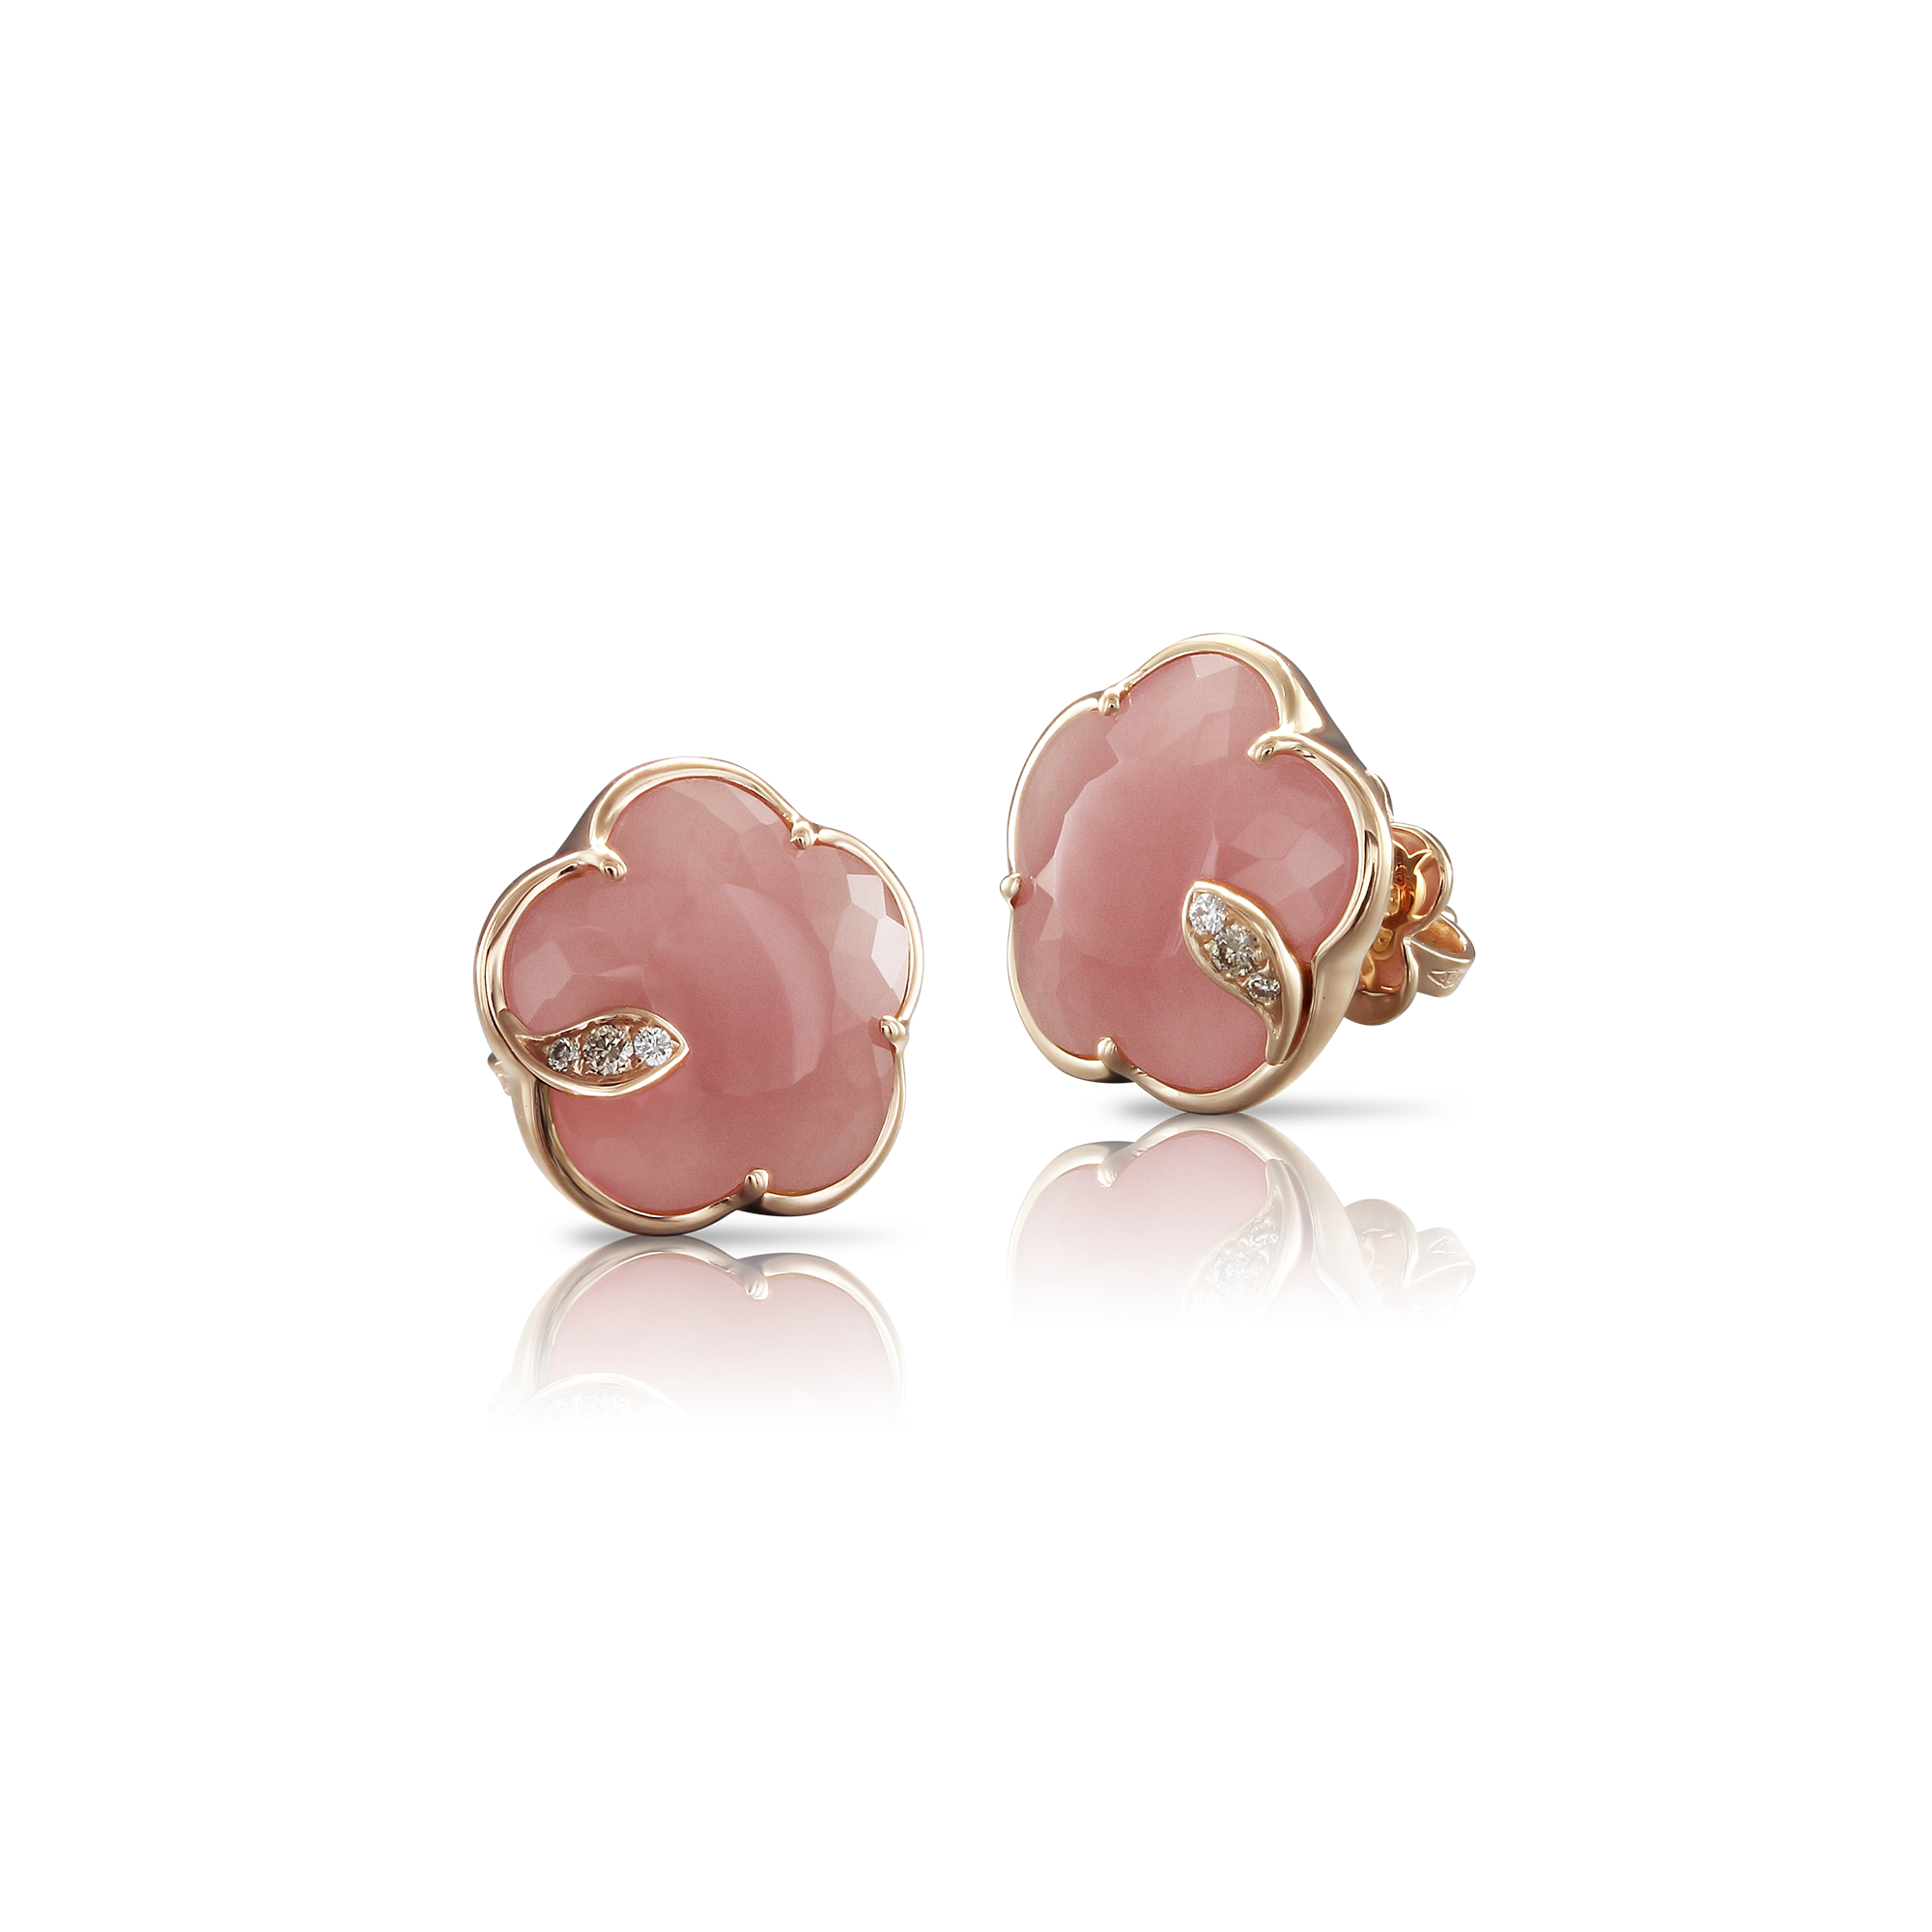 18k Rose Gold Petit Joli Earrings with Pink Chalcedony, White and Champagne Diamonds